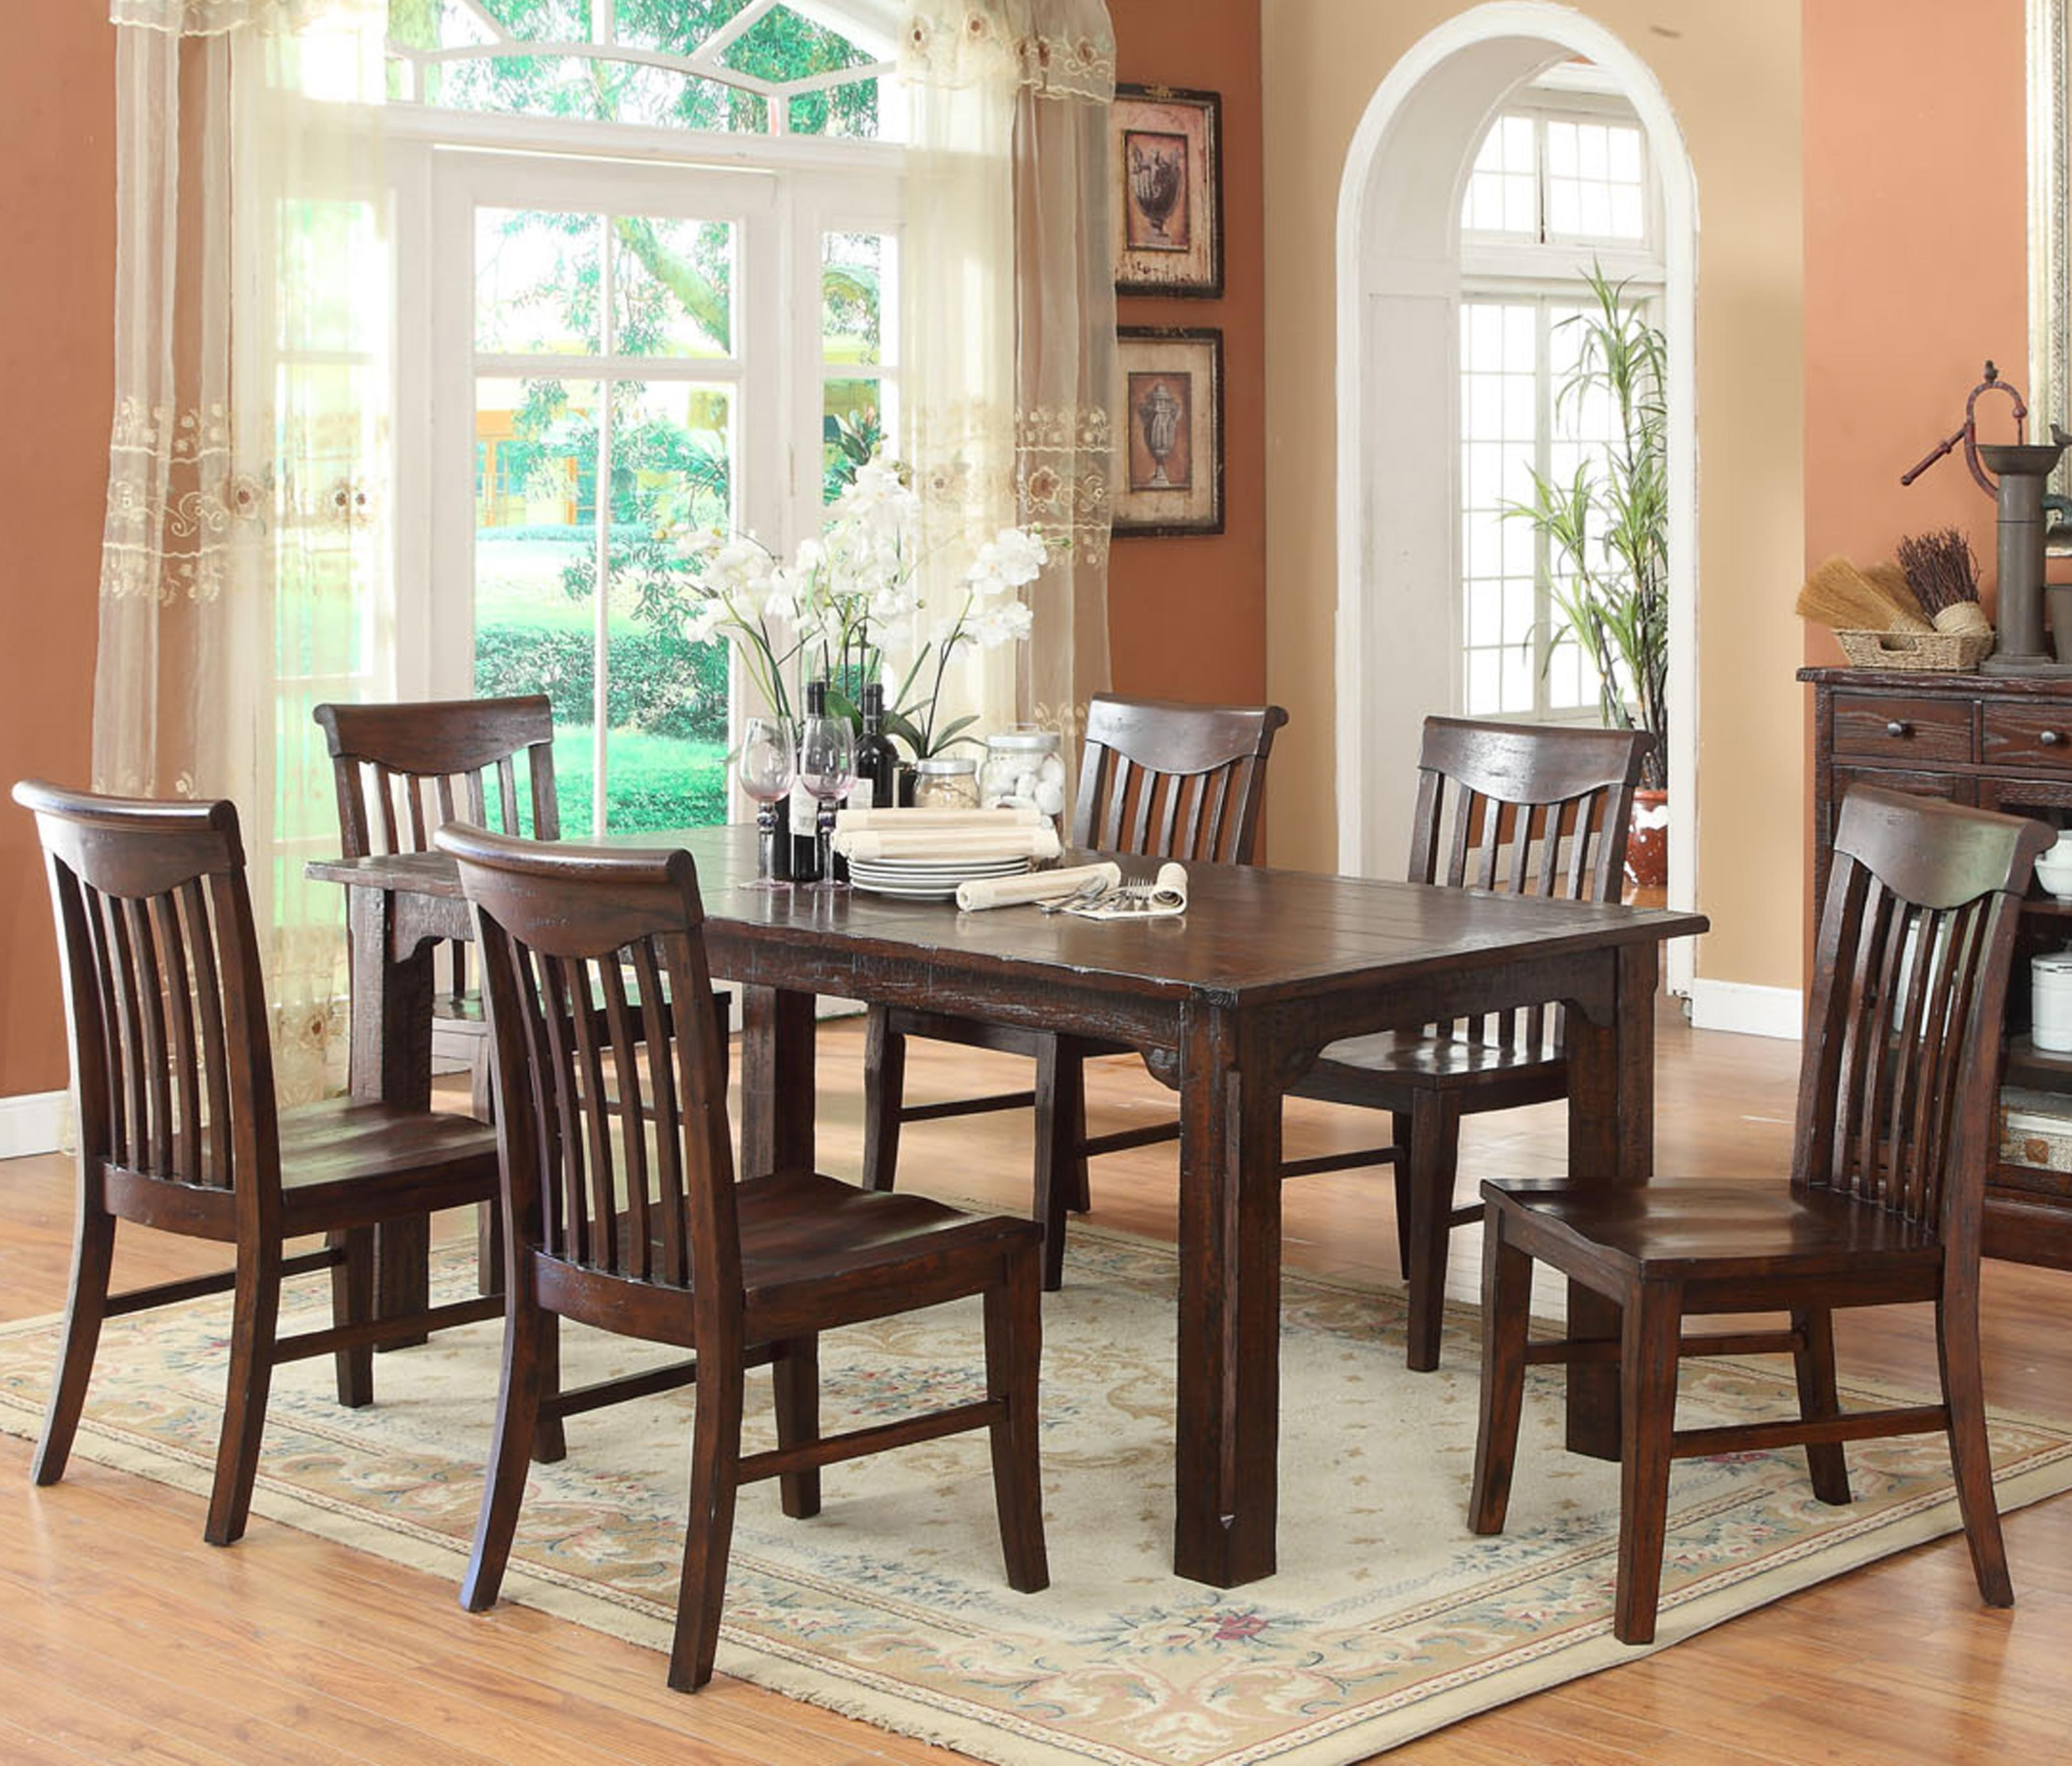 E C I Furniture Gettysburg Table And 4 Side Chairs Becker Furniture World Dining 5 Piece Sets